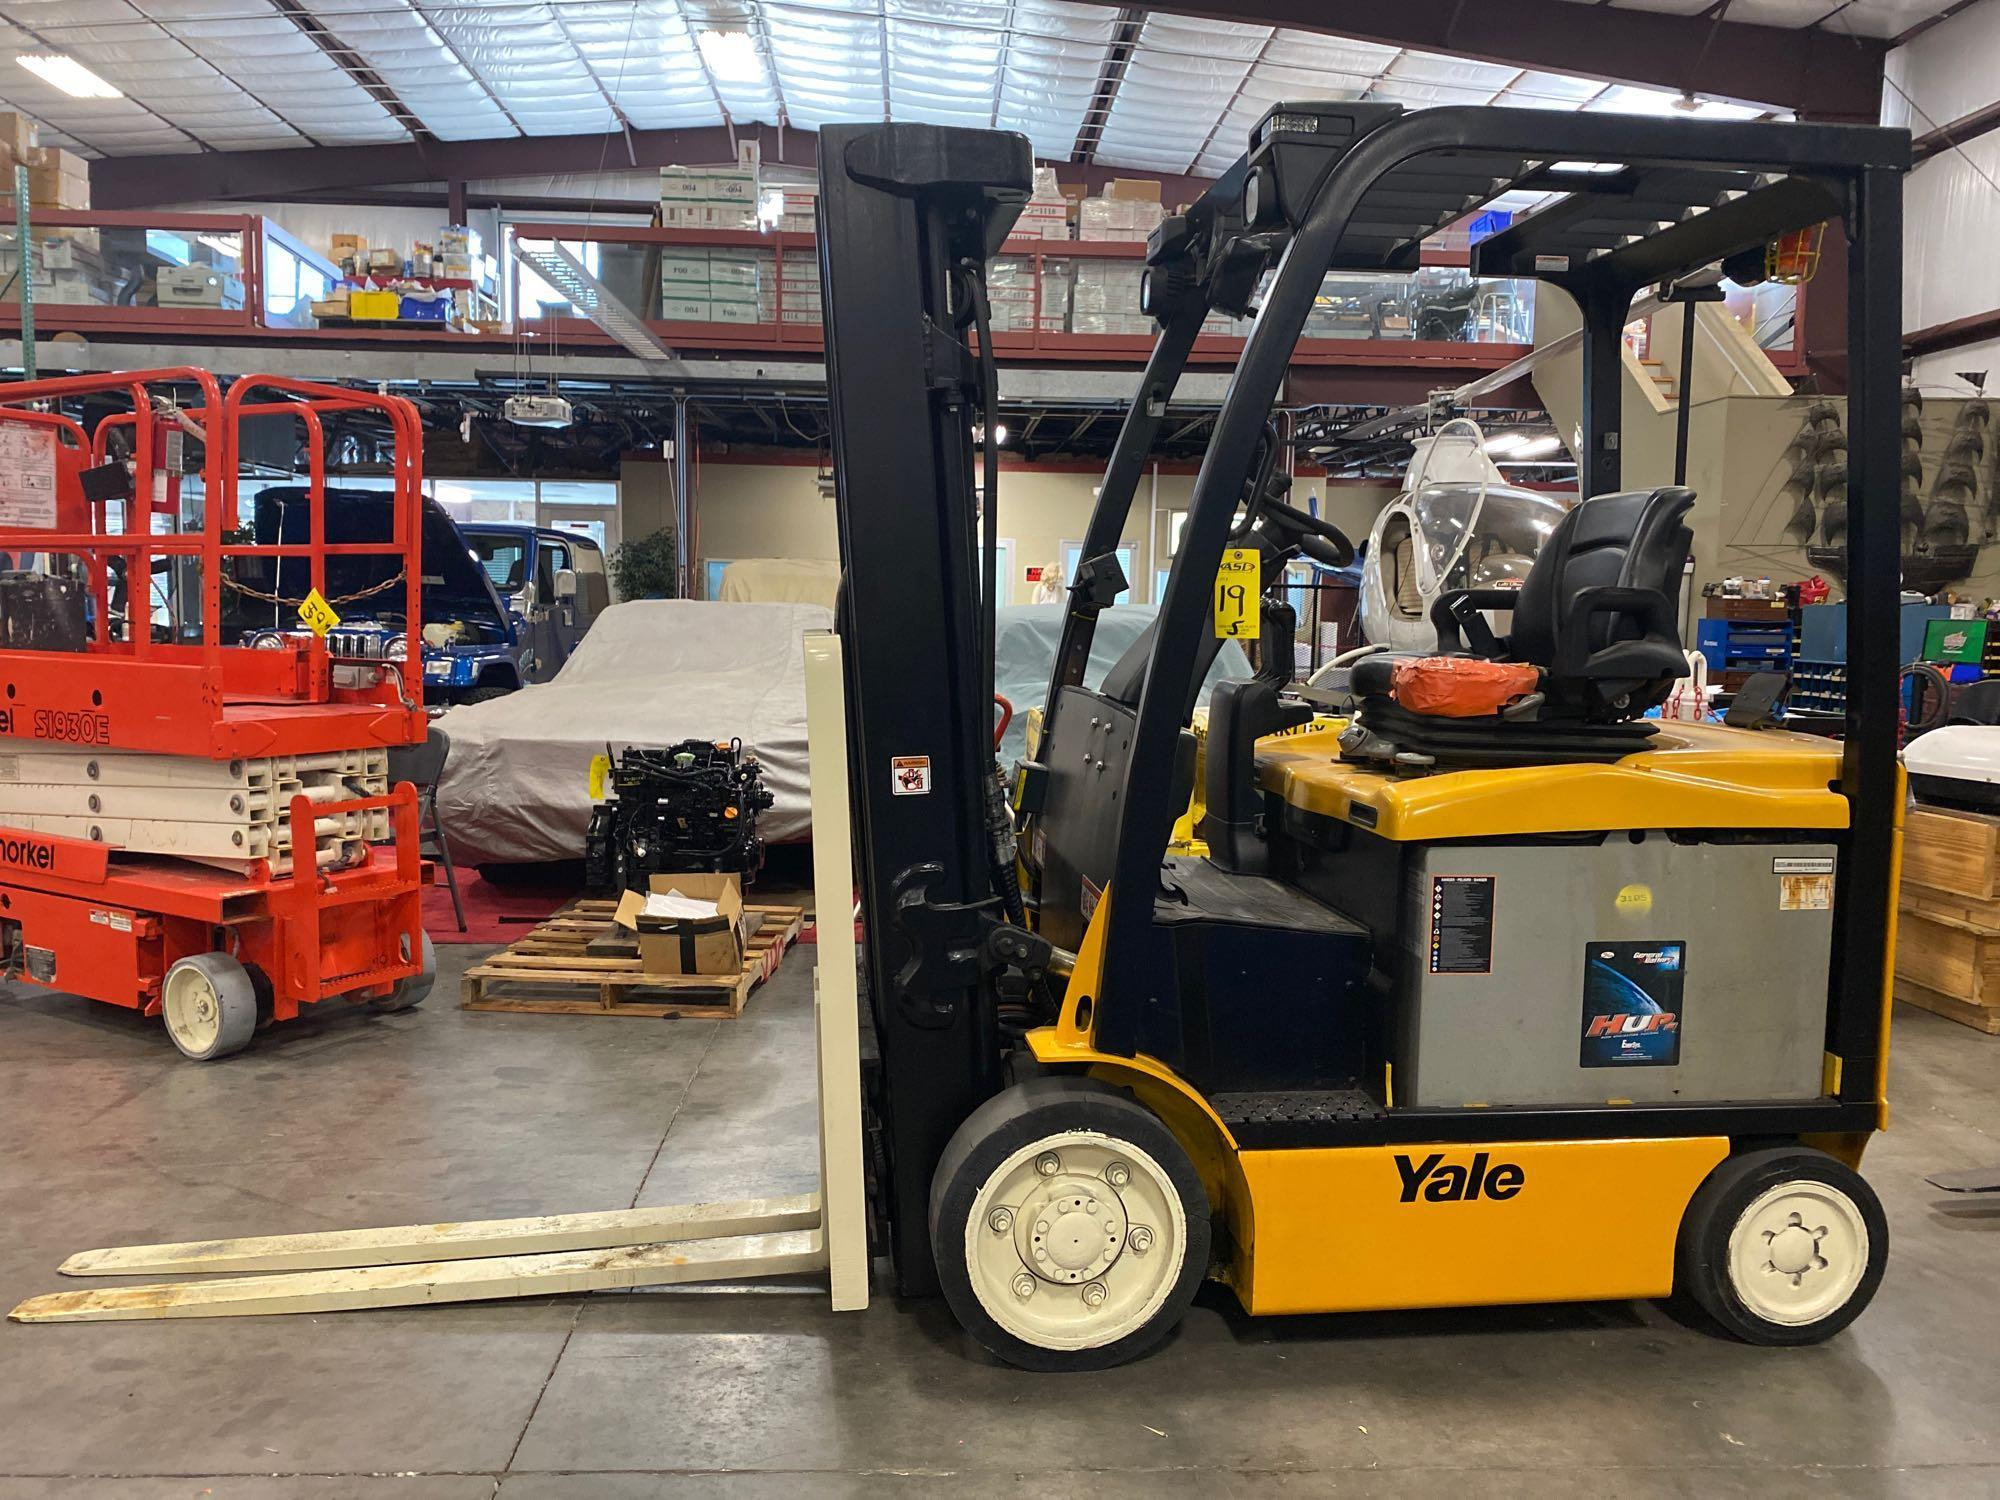 """YALE ELECTRIC FORKLIFT MODEL ERCO50VGN36TE088, 36V, 200.8"""" HEIGHT CAPACITY, APPROX. 5,000 LB CAPACIT - Image 2 of 9"""